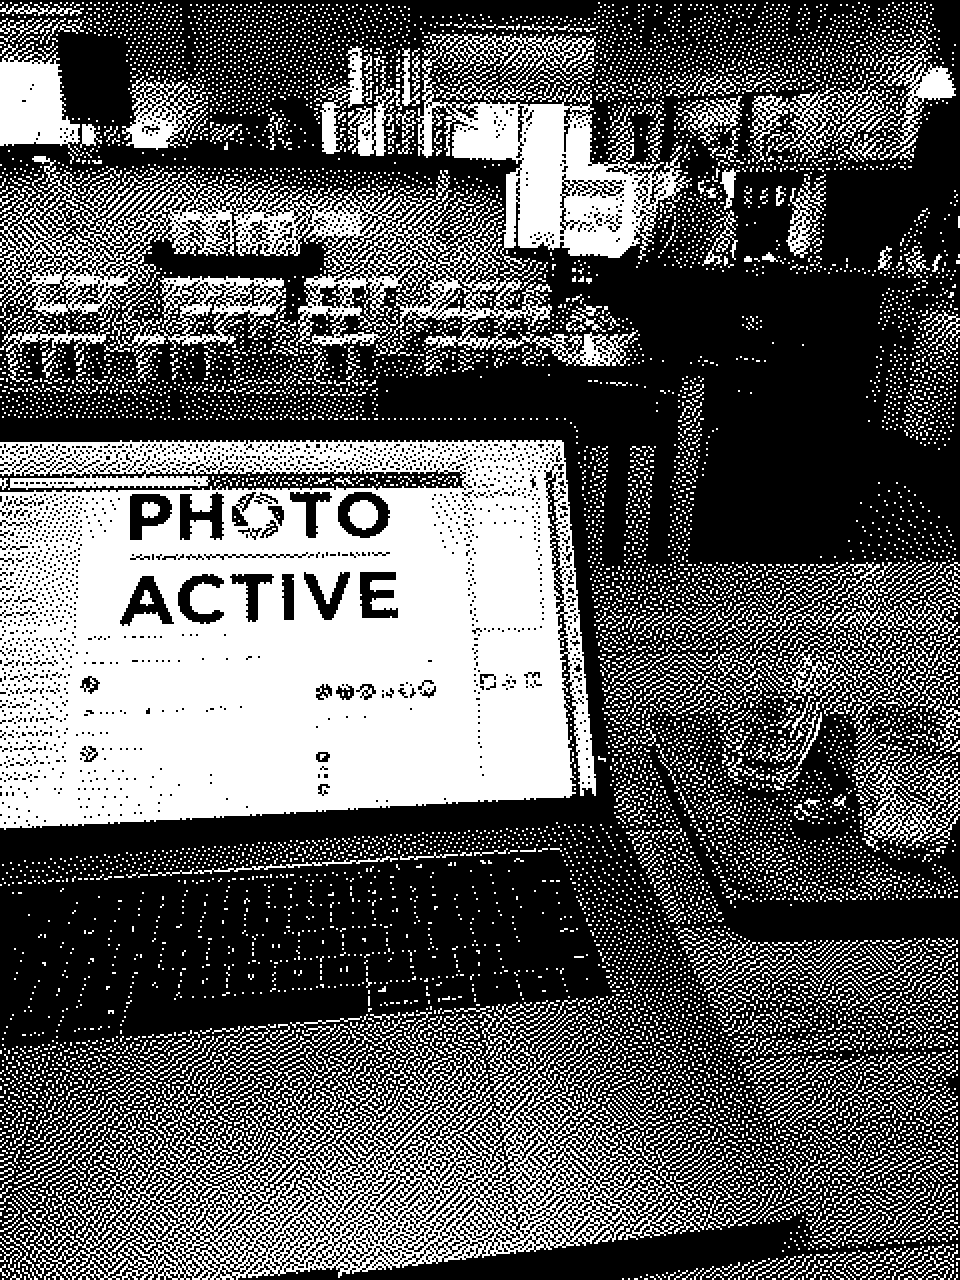 A photo made with Bitcam.